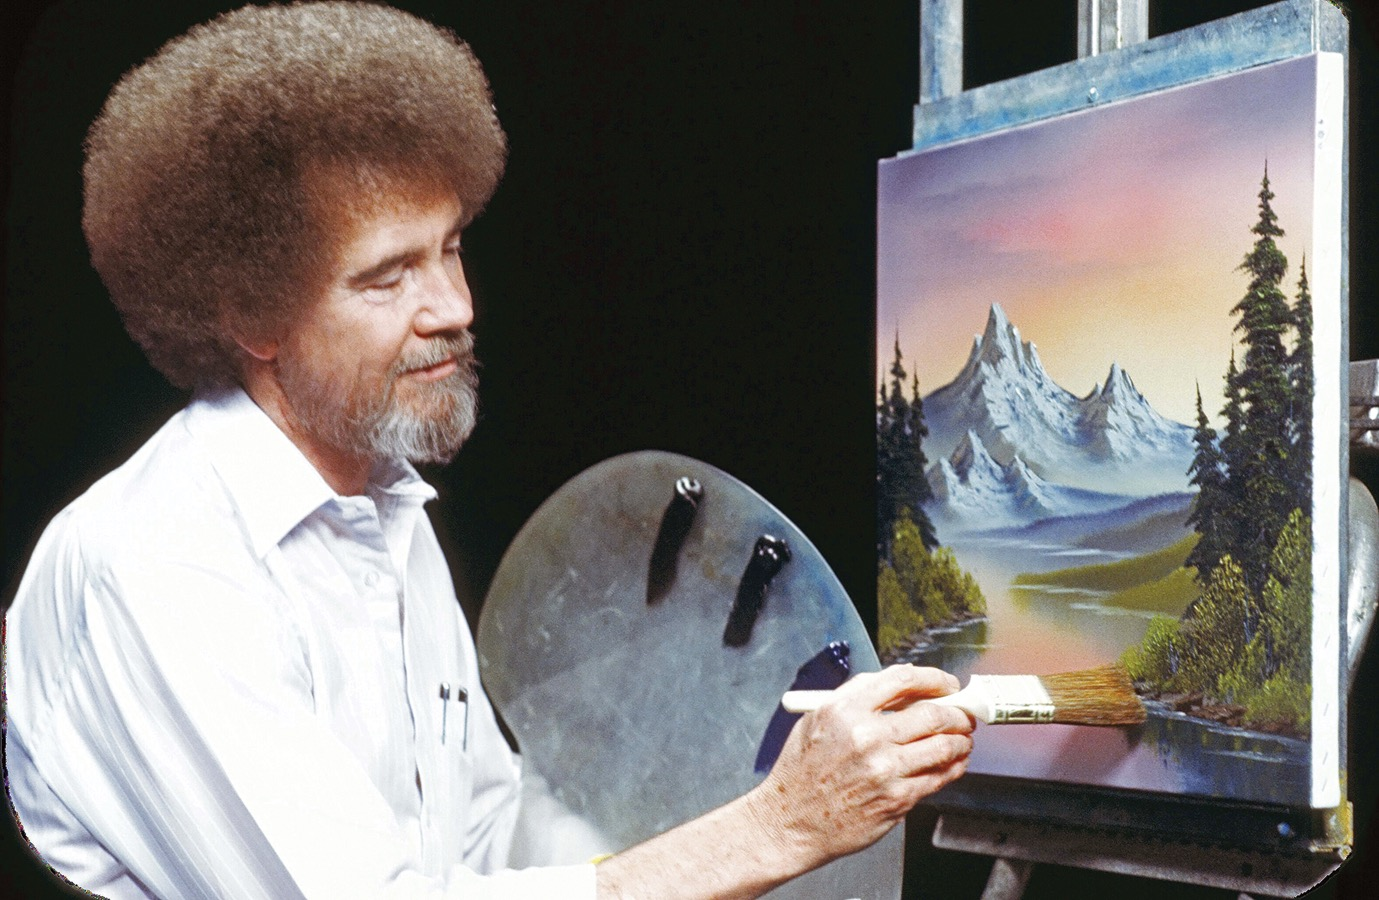 Bob Ross brings us peace